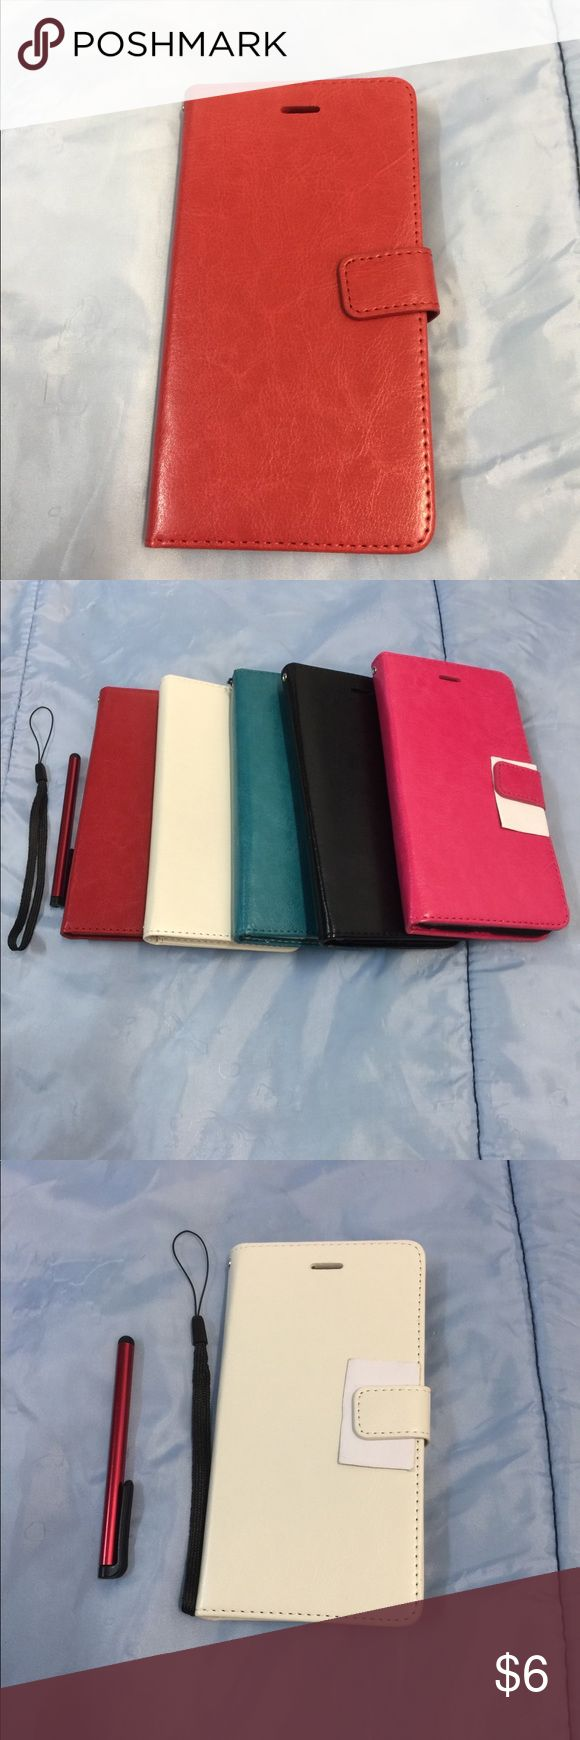 iPhone 6 Plus Case red iPhone 6 Plus Case  Color:red $ 6 each Other